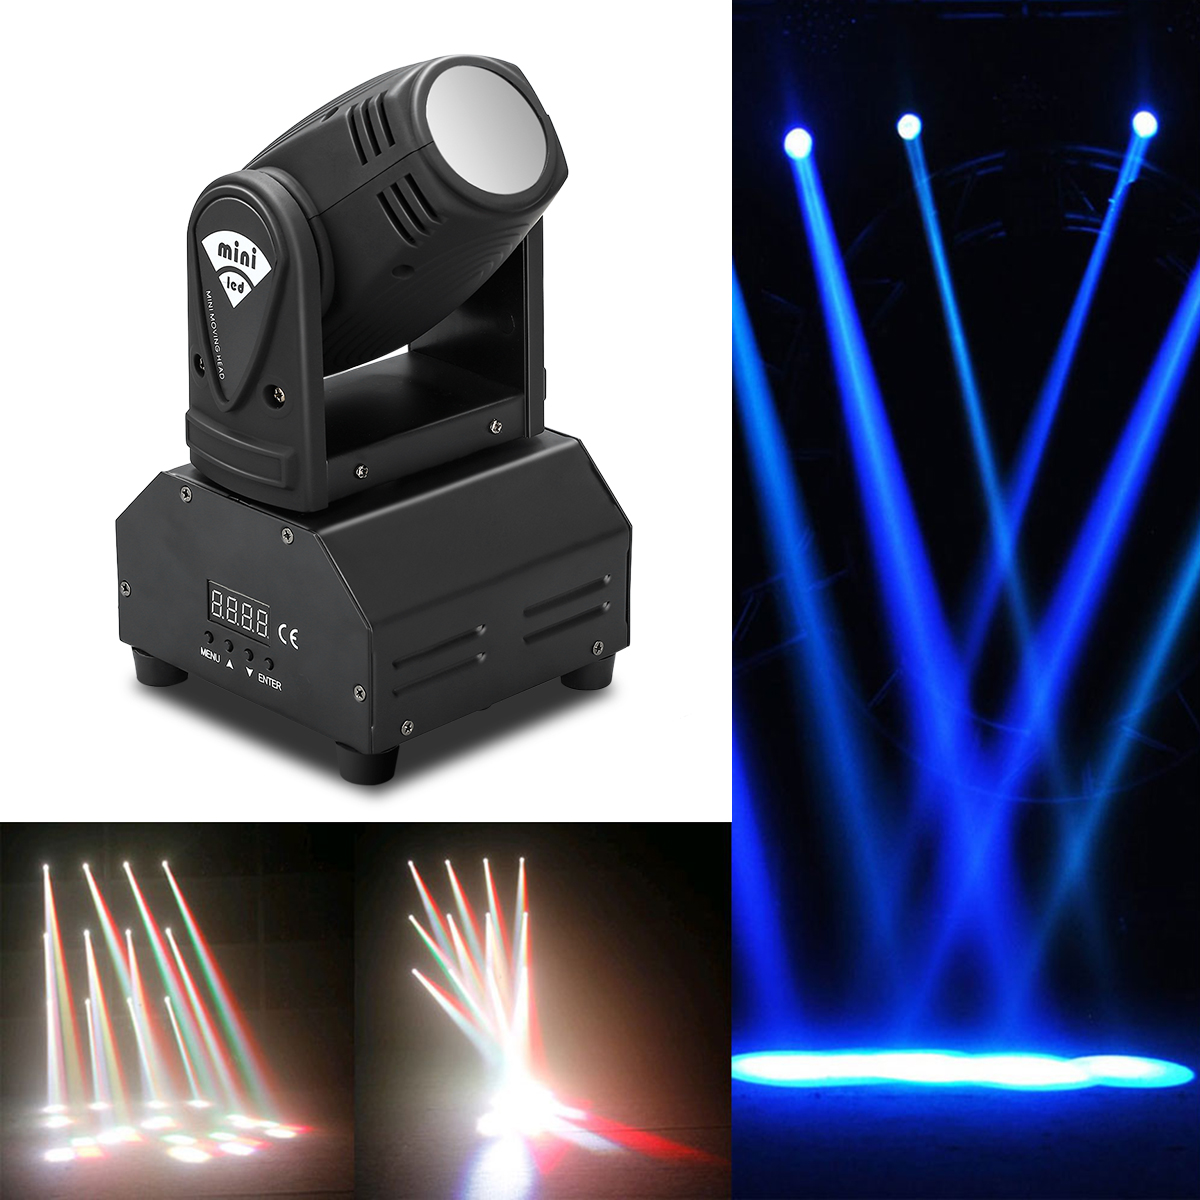 Mini Dj Strobe Light 20w Compact Led Strobe Light Professional Powerful Disco Strobe Effects Stage Lighting For Nightclub Party In Pain Stage Lighting Effect